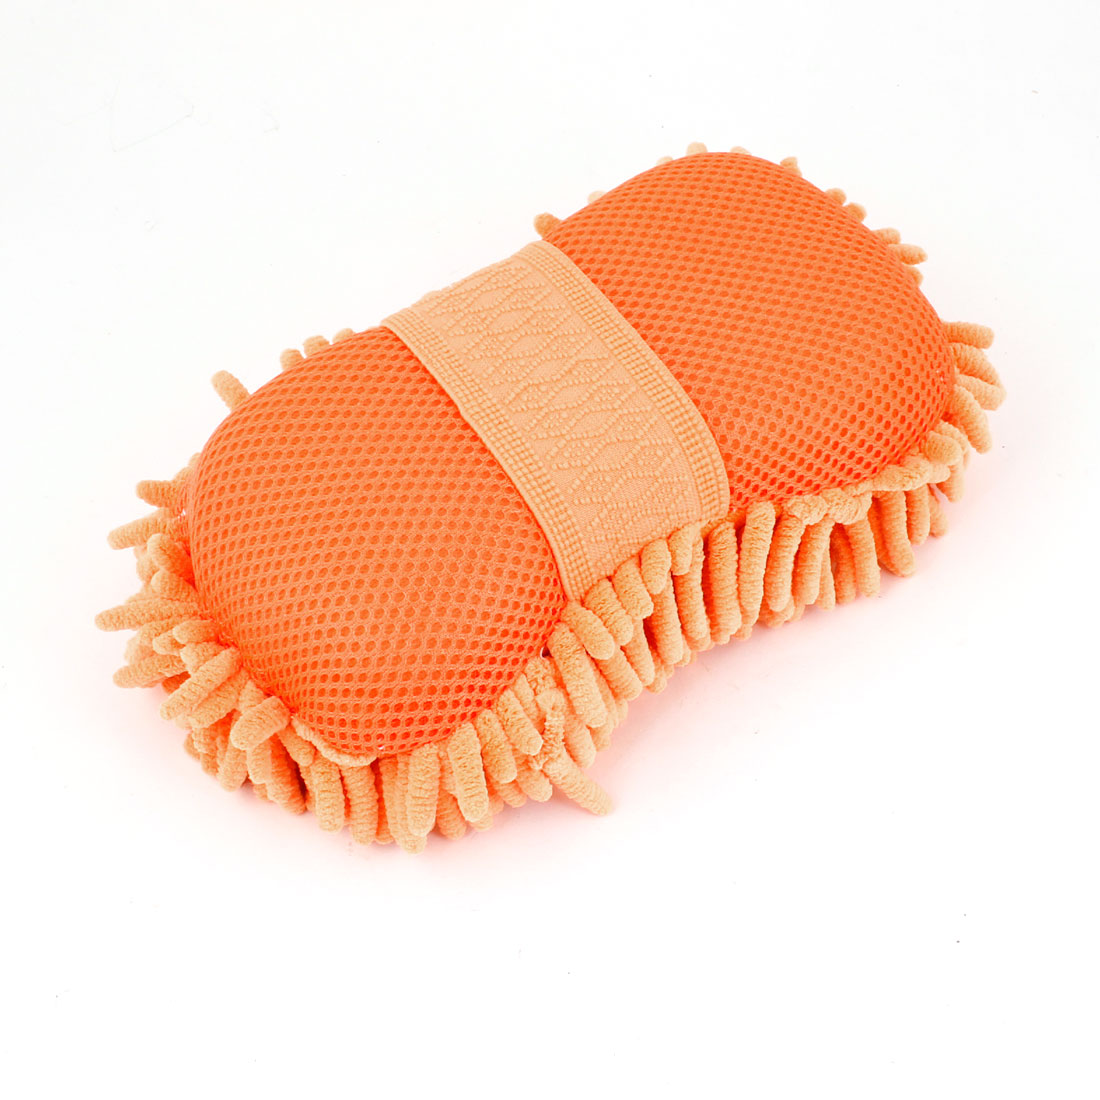 Vehicle Car Orange Chenille Mocrofiber Cleaning Washing Tool